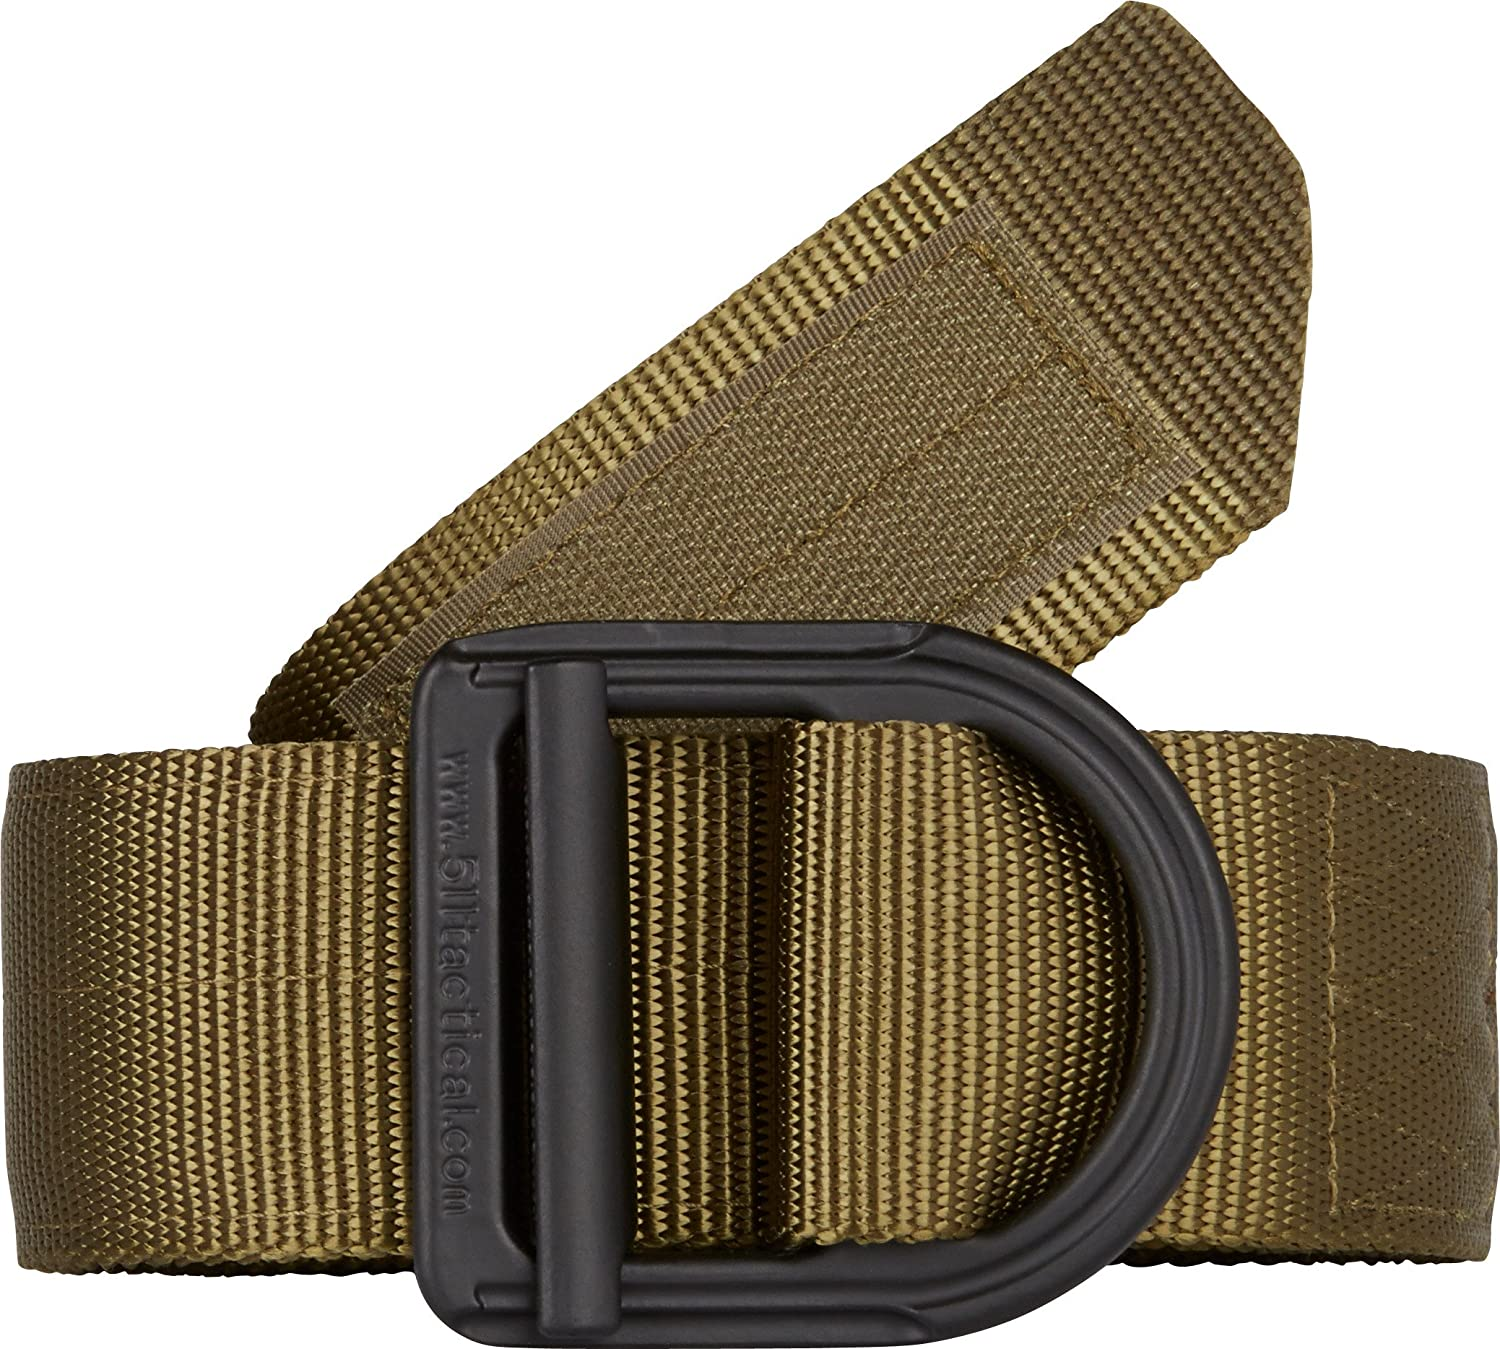 5.11 Tactical Operator 1 3 4  Belt, Military Style, HeavyDuty Nylon Mesh 5100lb Tensile Strength, Stainless Steel Buckle, Fade & Rip Resistant, Style 59405